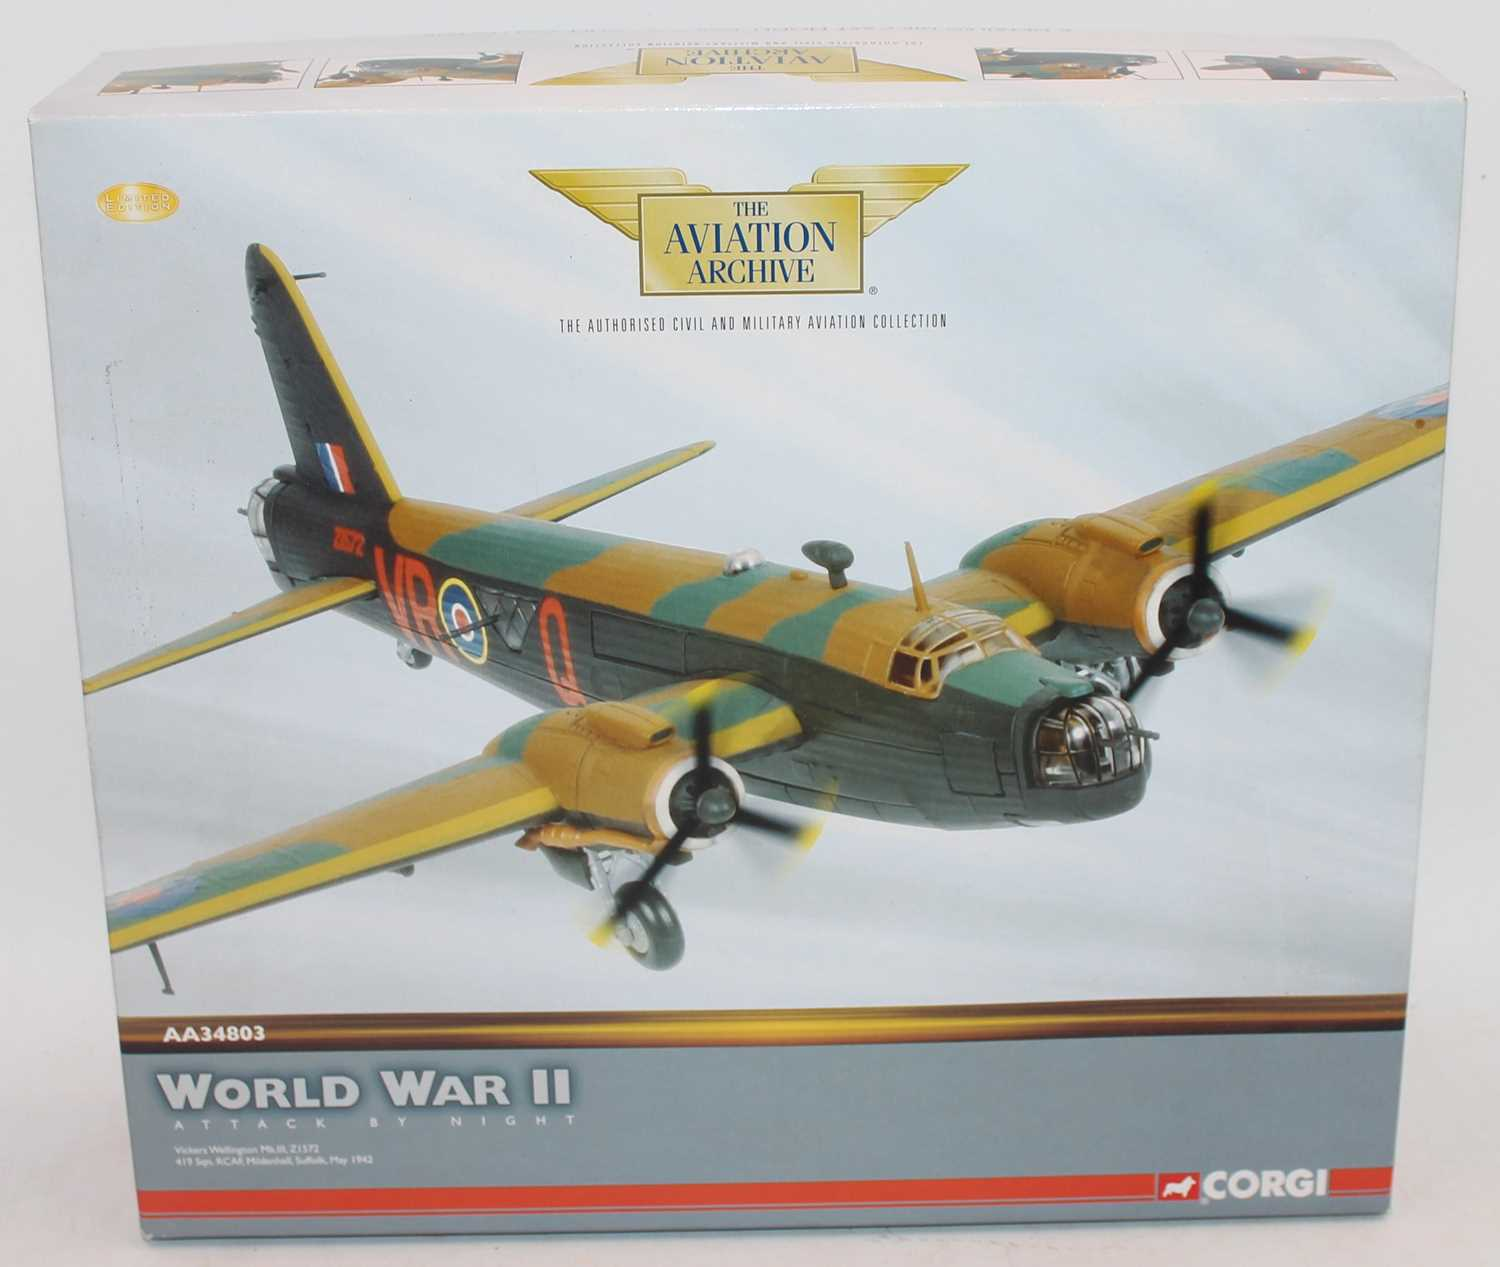 A Corgi Aviation Archive model No. AA34803 limited edition diecast model of a Vickers Wellington